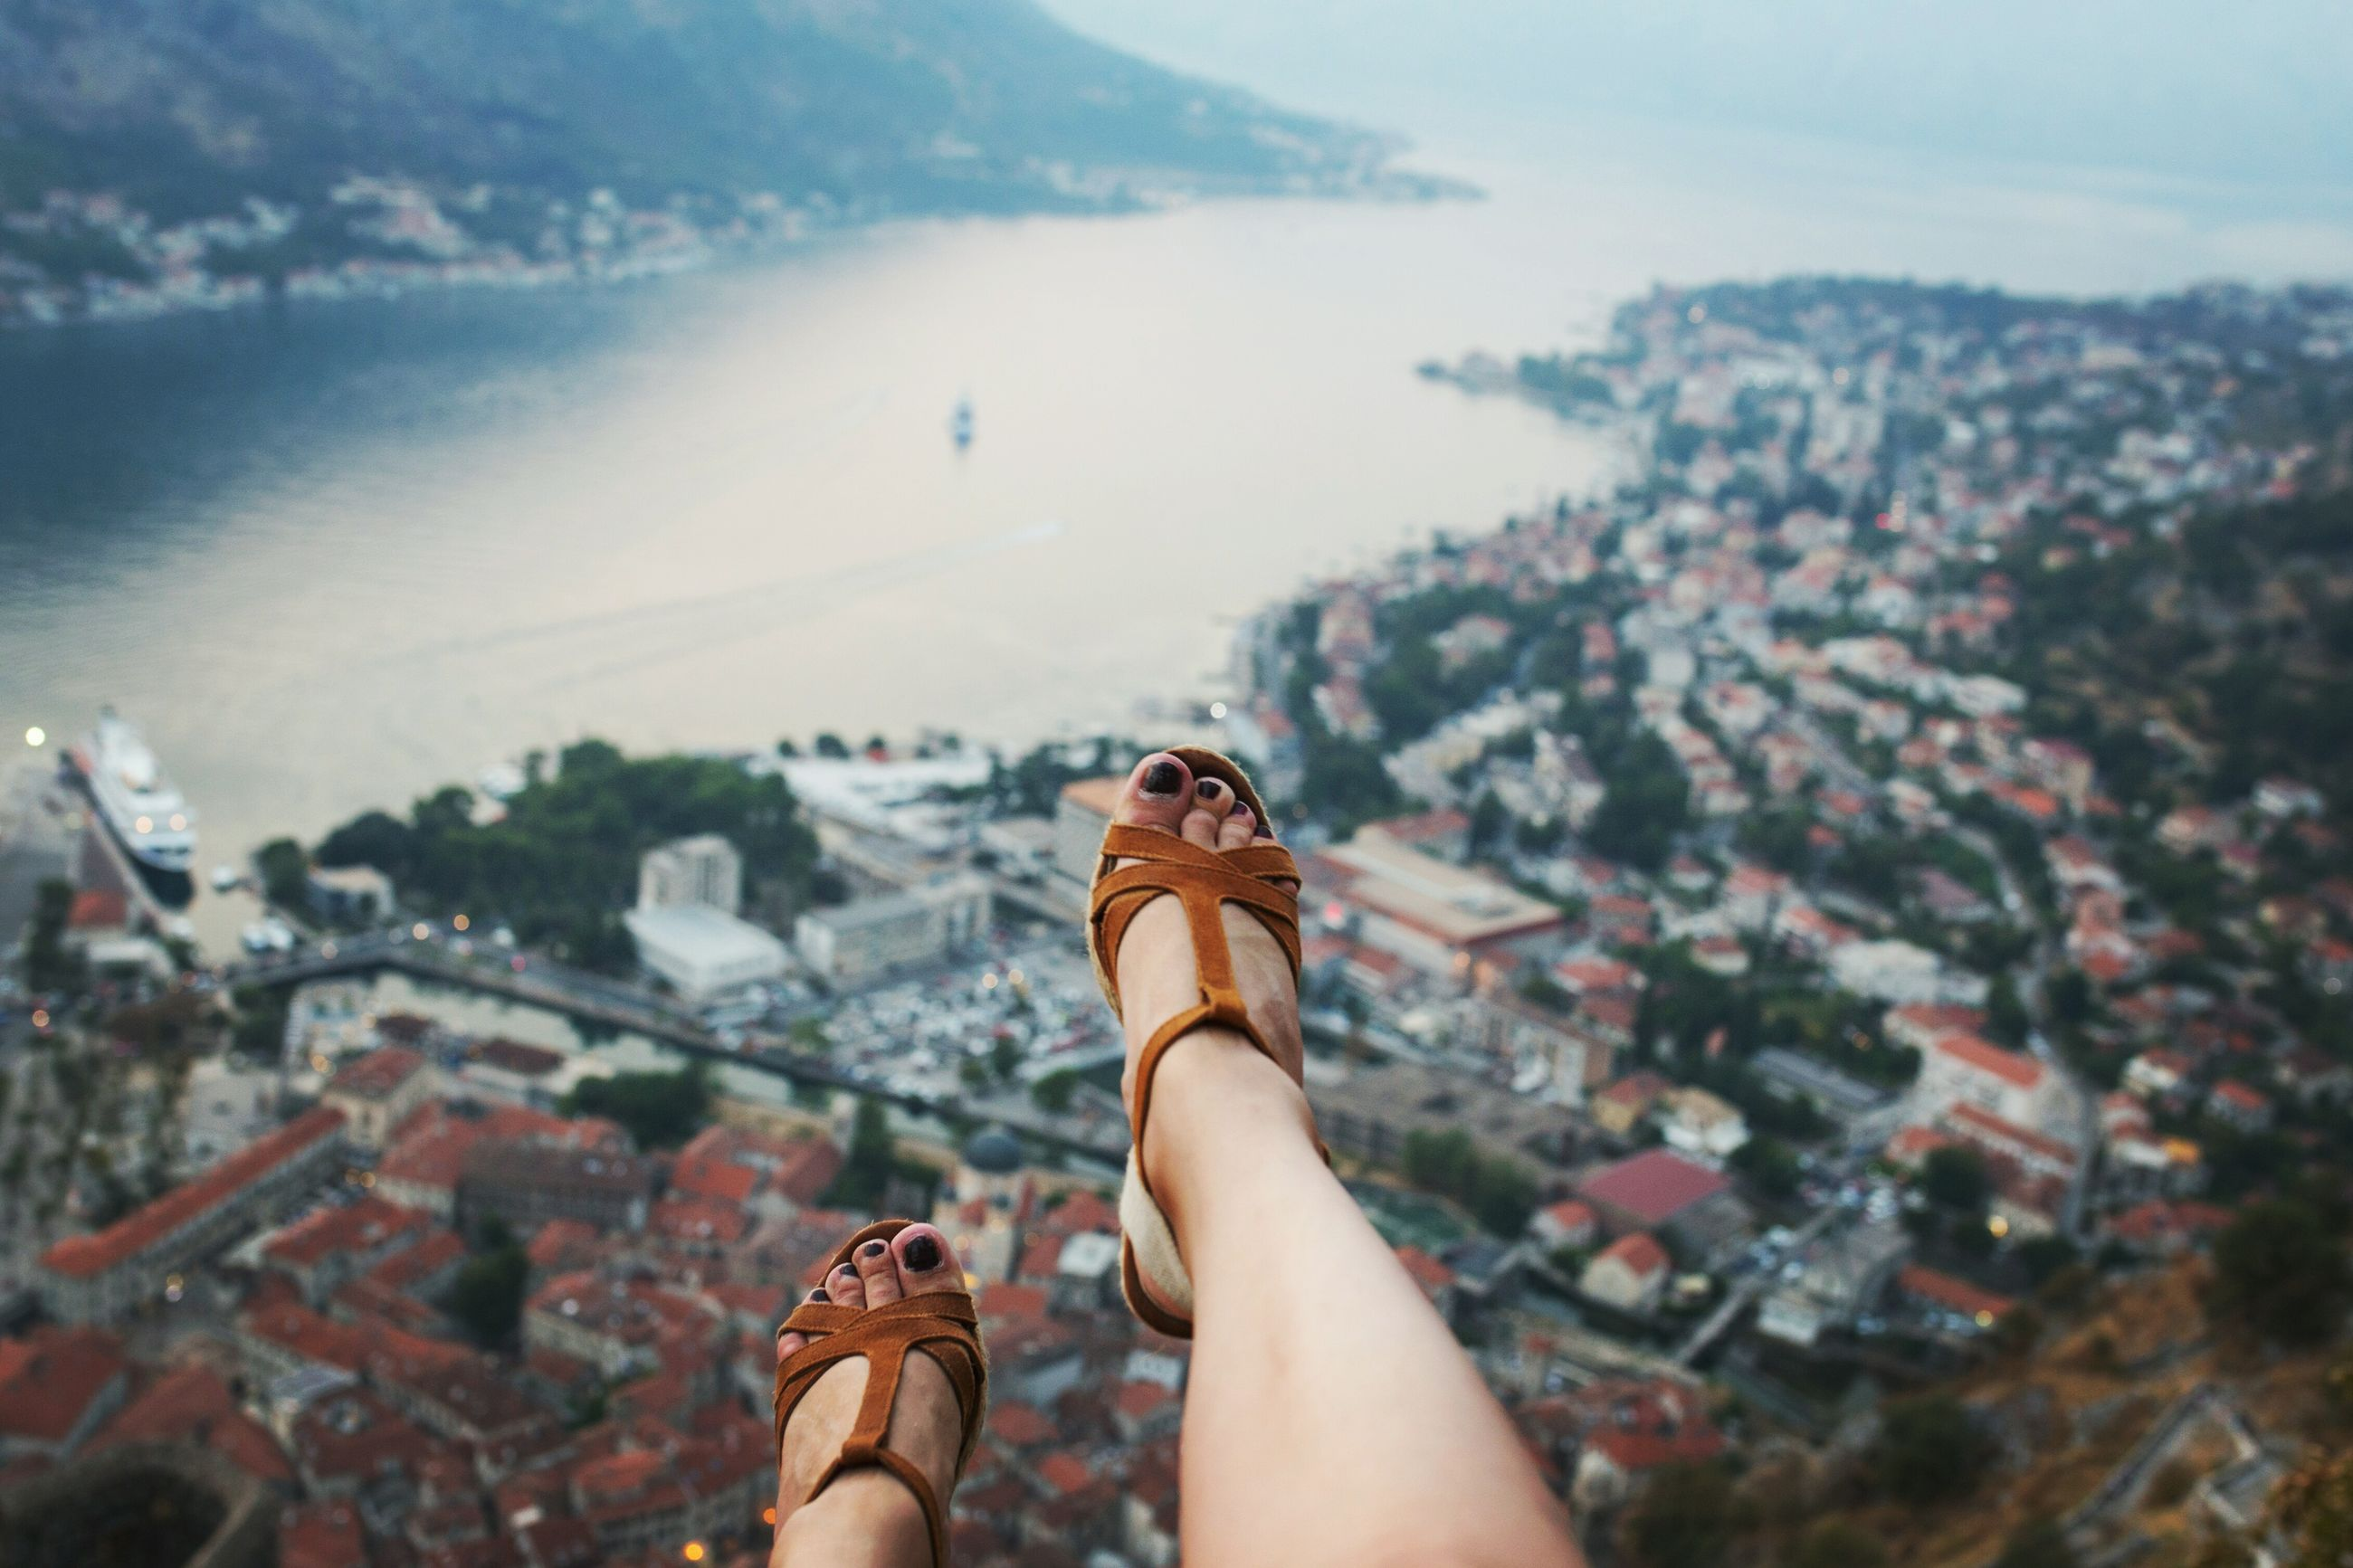 personal perspective, human body part, architecture, leisure activity, one person, lifestyles, real people, body part, nature, building exterior, sky, built structure, day, adult, city, focus on foreground, women, mountain, cityscape, outdoors, human foot